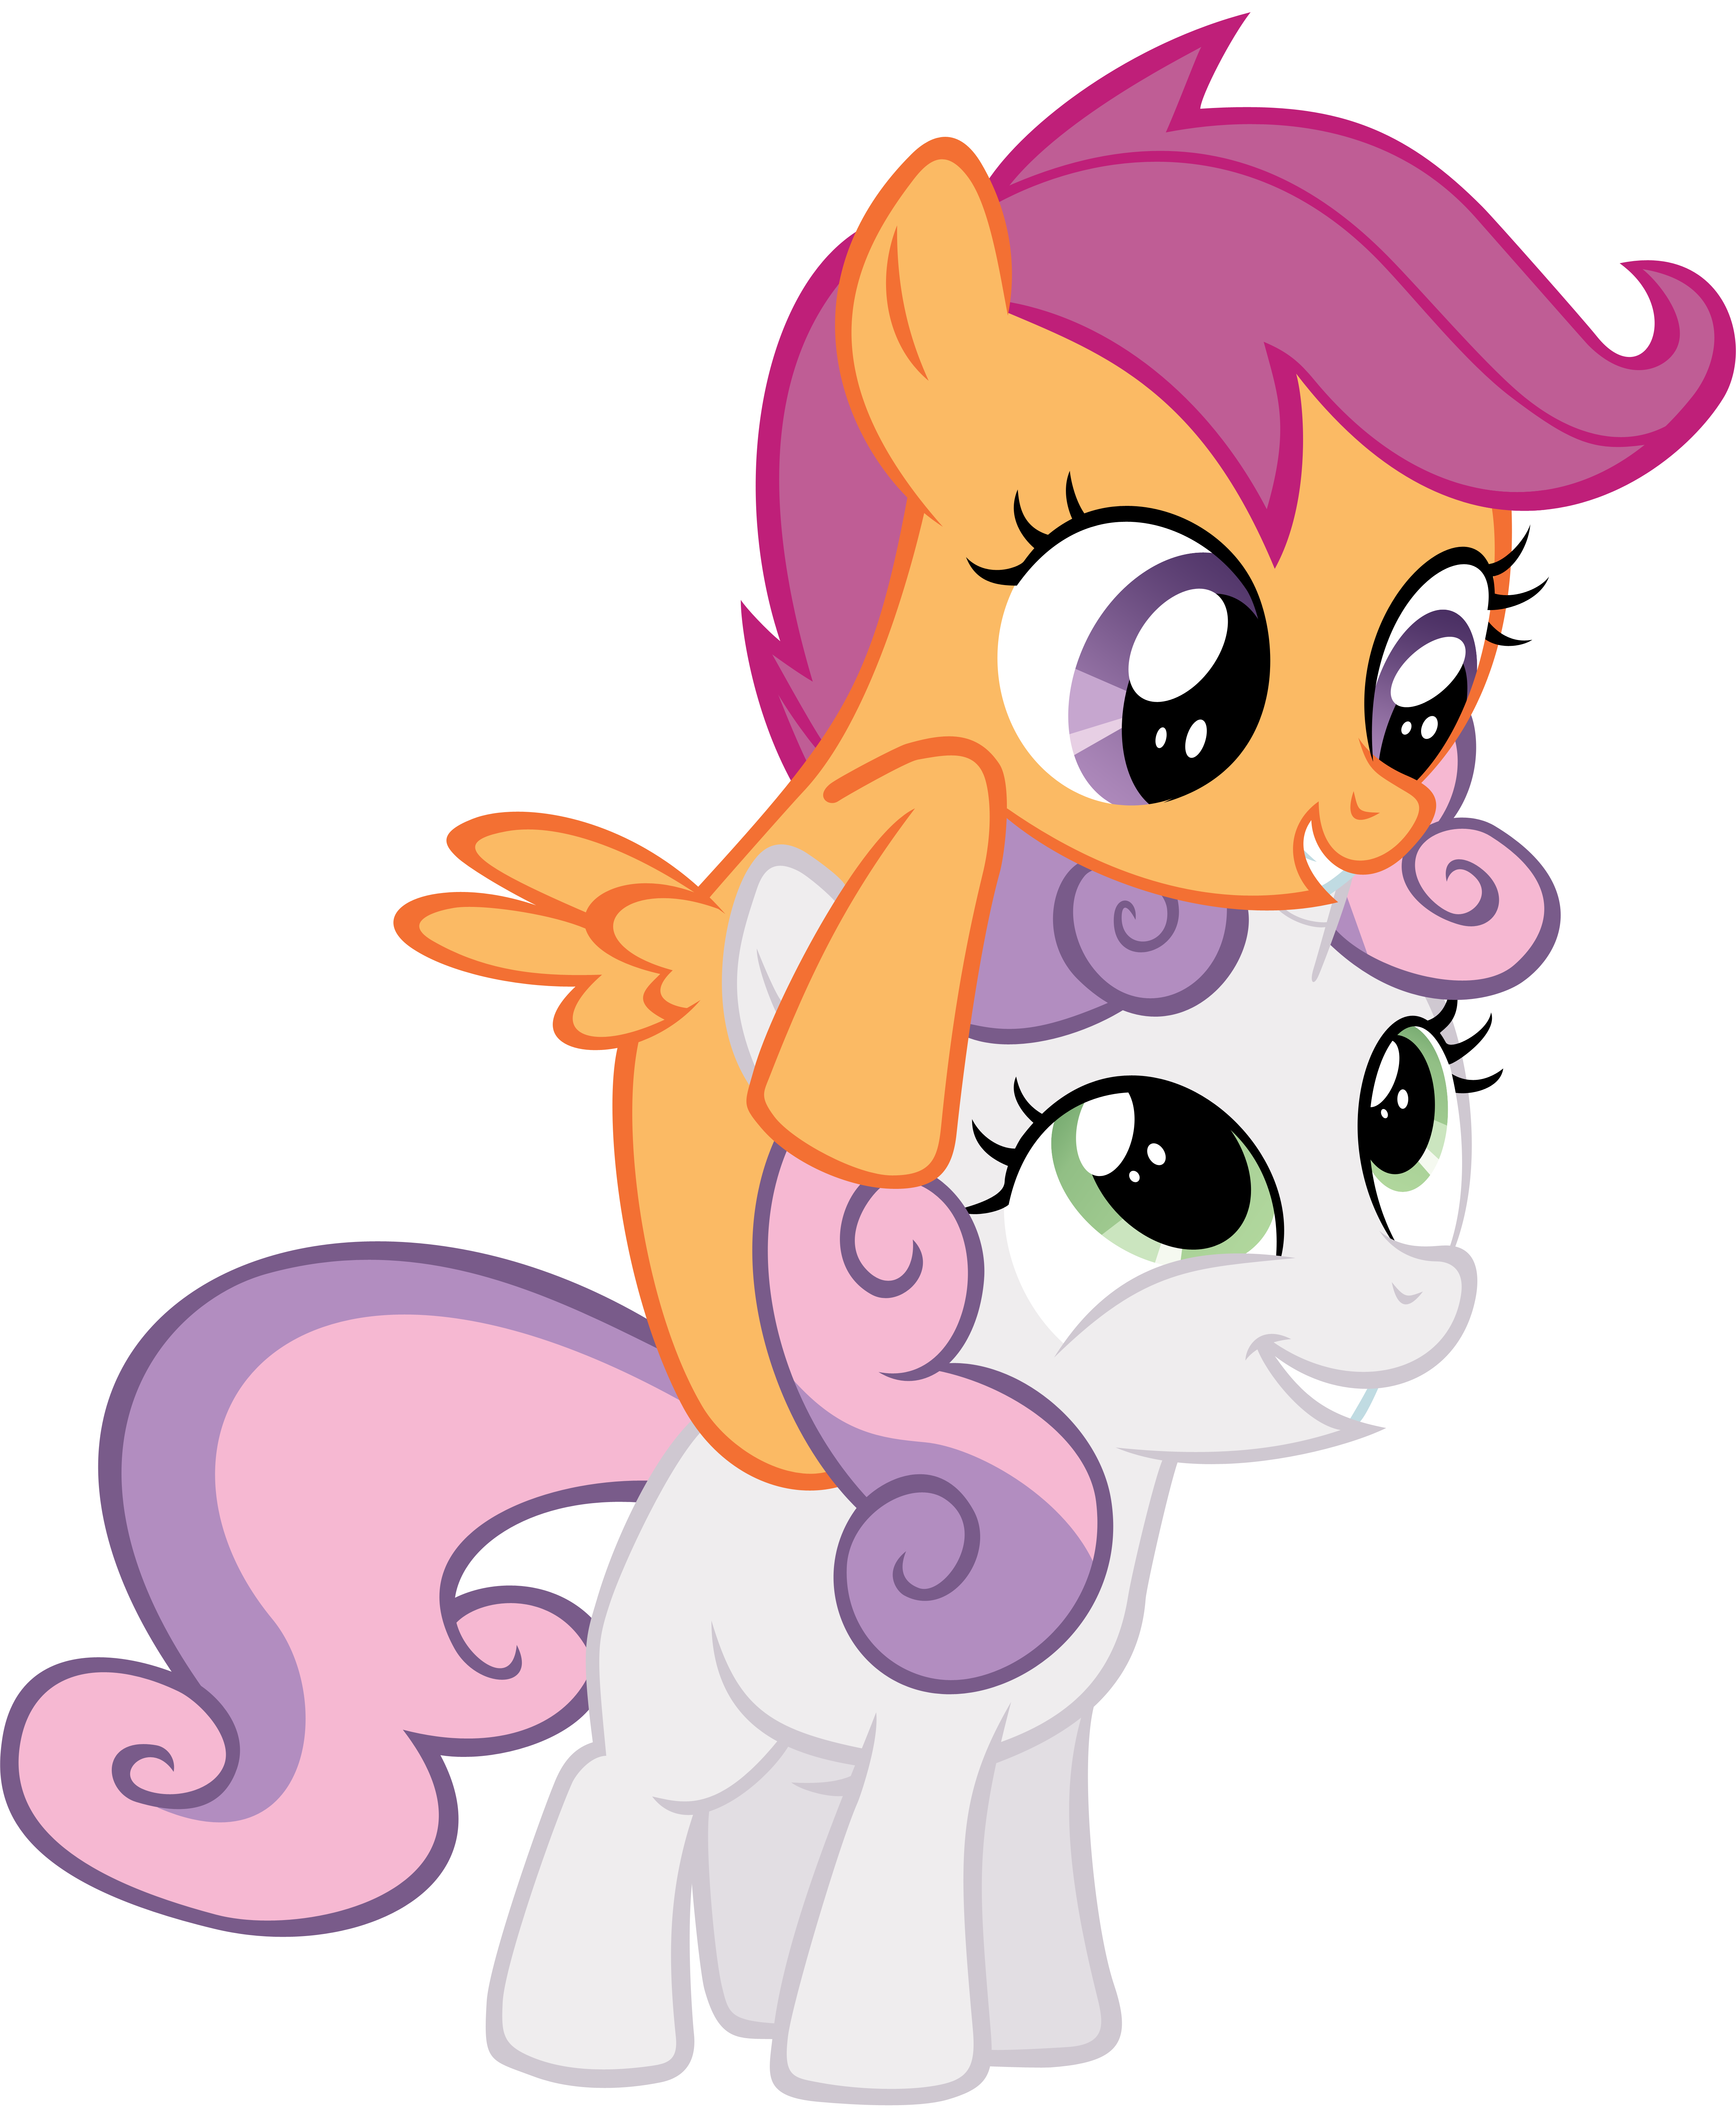 Piggyback On Sweetie Belle My Little Pony Friendship Is Magic Know Your Meme